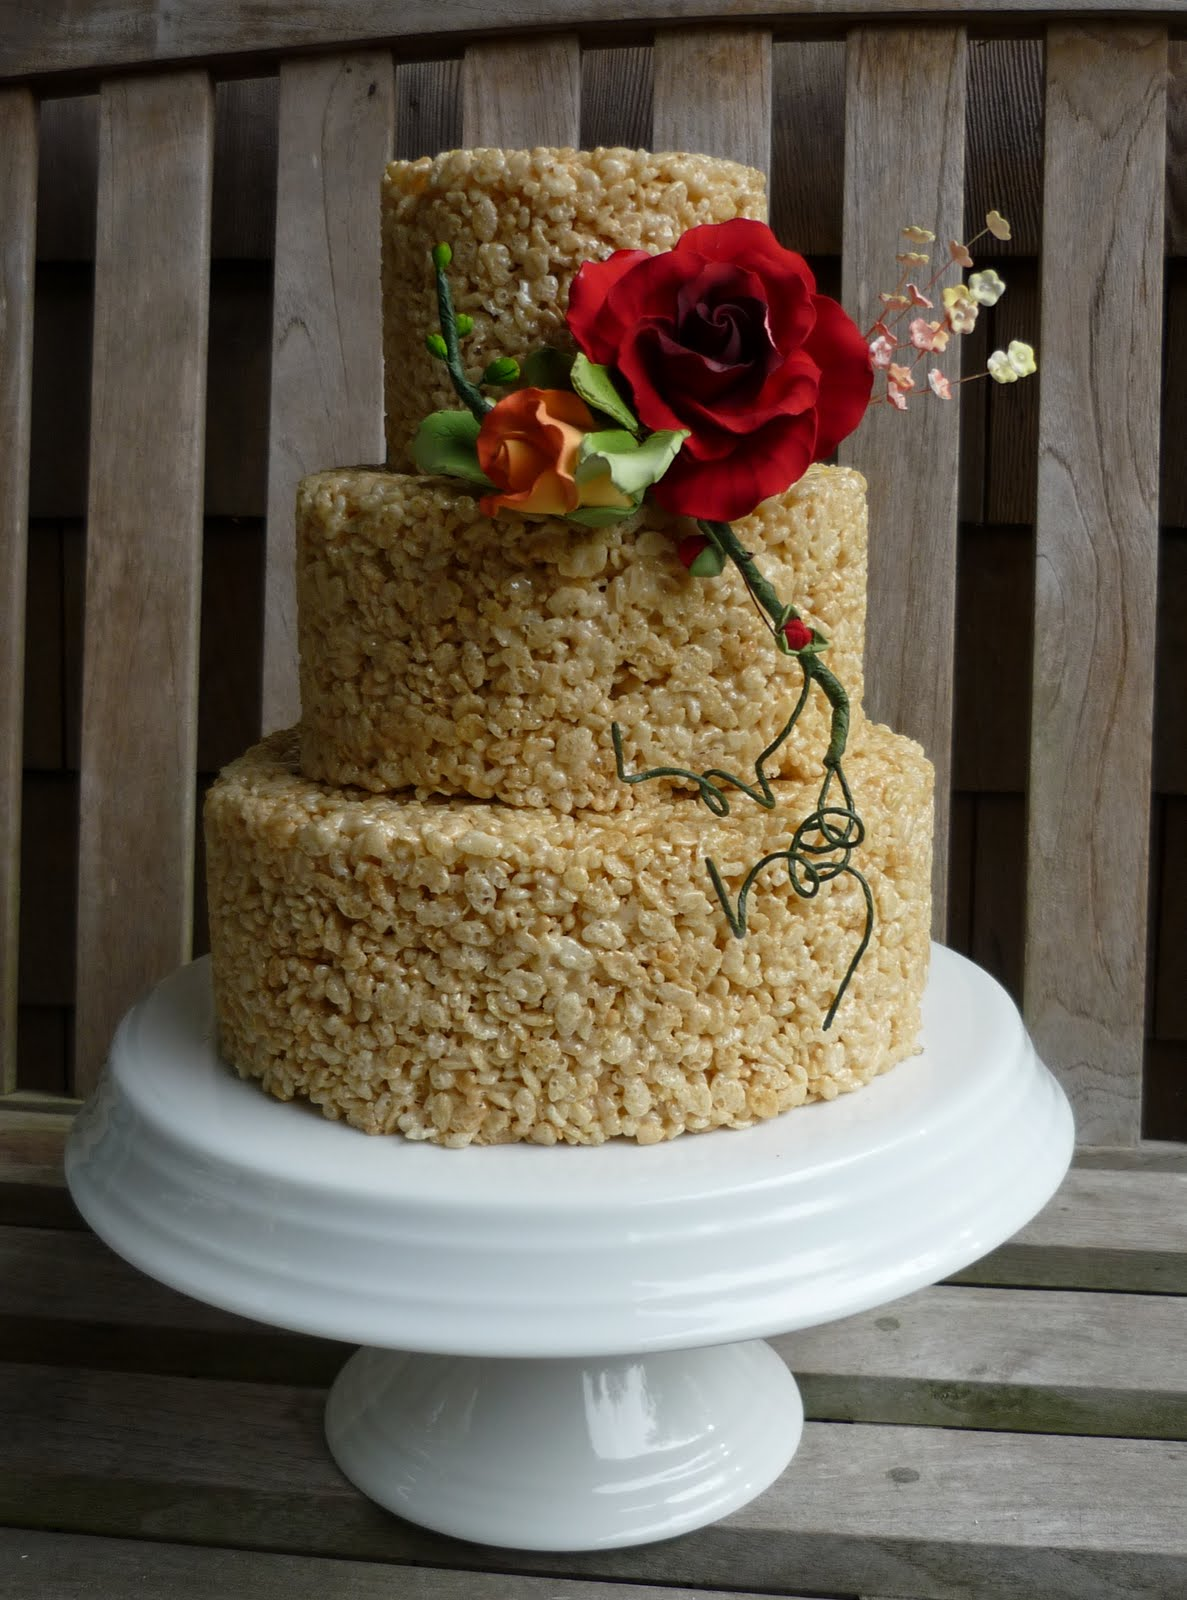 ... Krispie Wedding Cake Pictures! Rice_krispie_wedding_cake_2_0.  Rice_krispie_wedding_cake_4_. Rice_krispie_wedding_cake_5_0.  Rice_krispie_wedding_cake_7